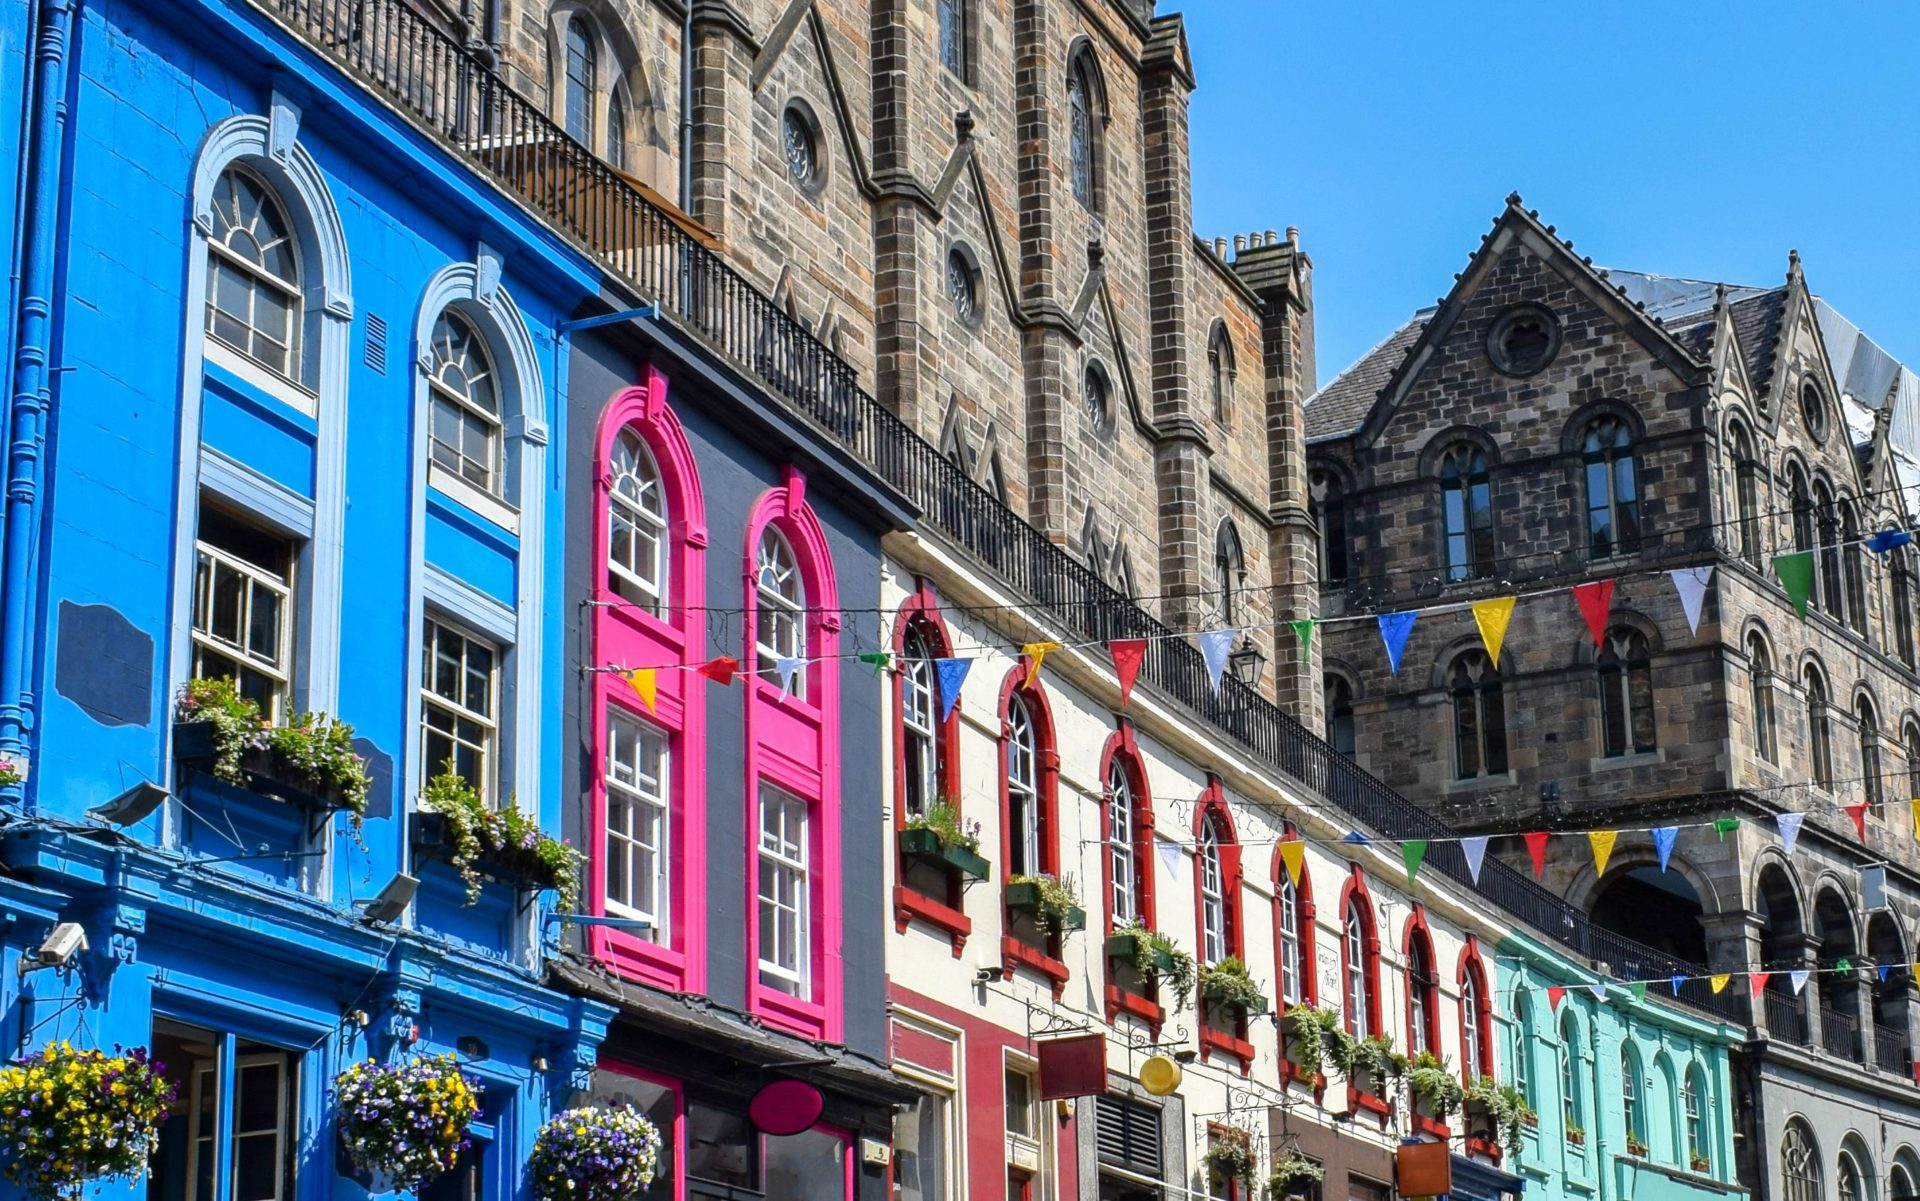 Colourful houses on Victoria Street in Edinburgh, a popular location for those deciding where to buy property in the UK